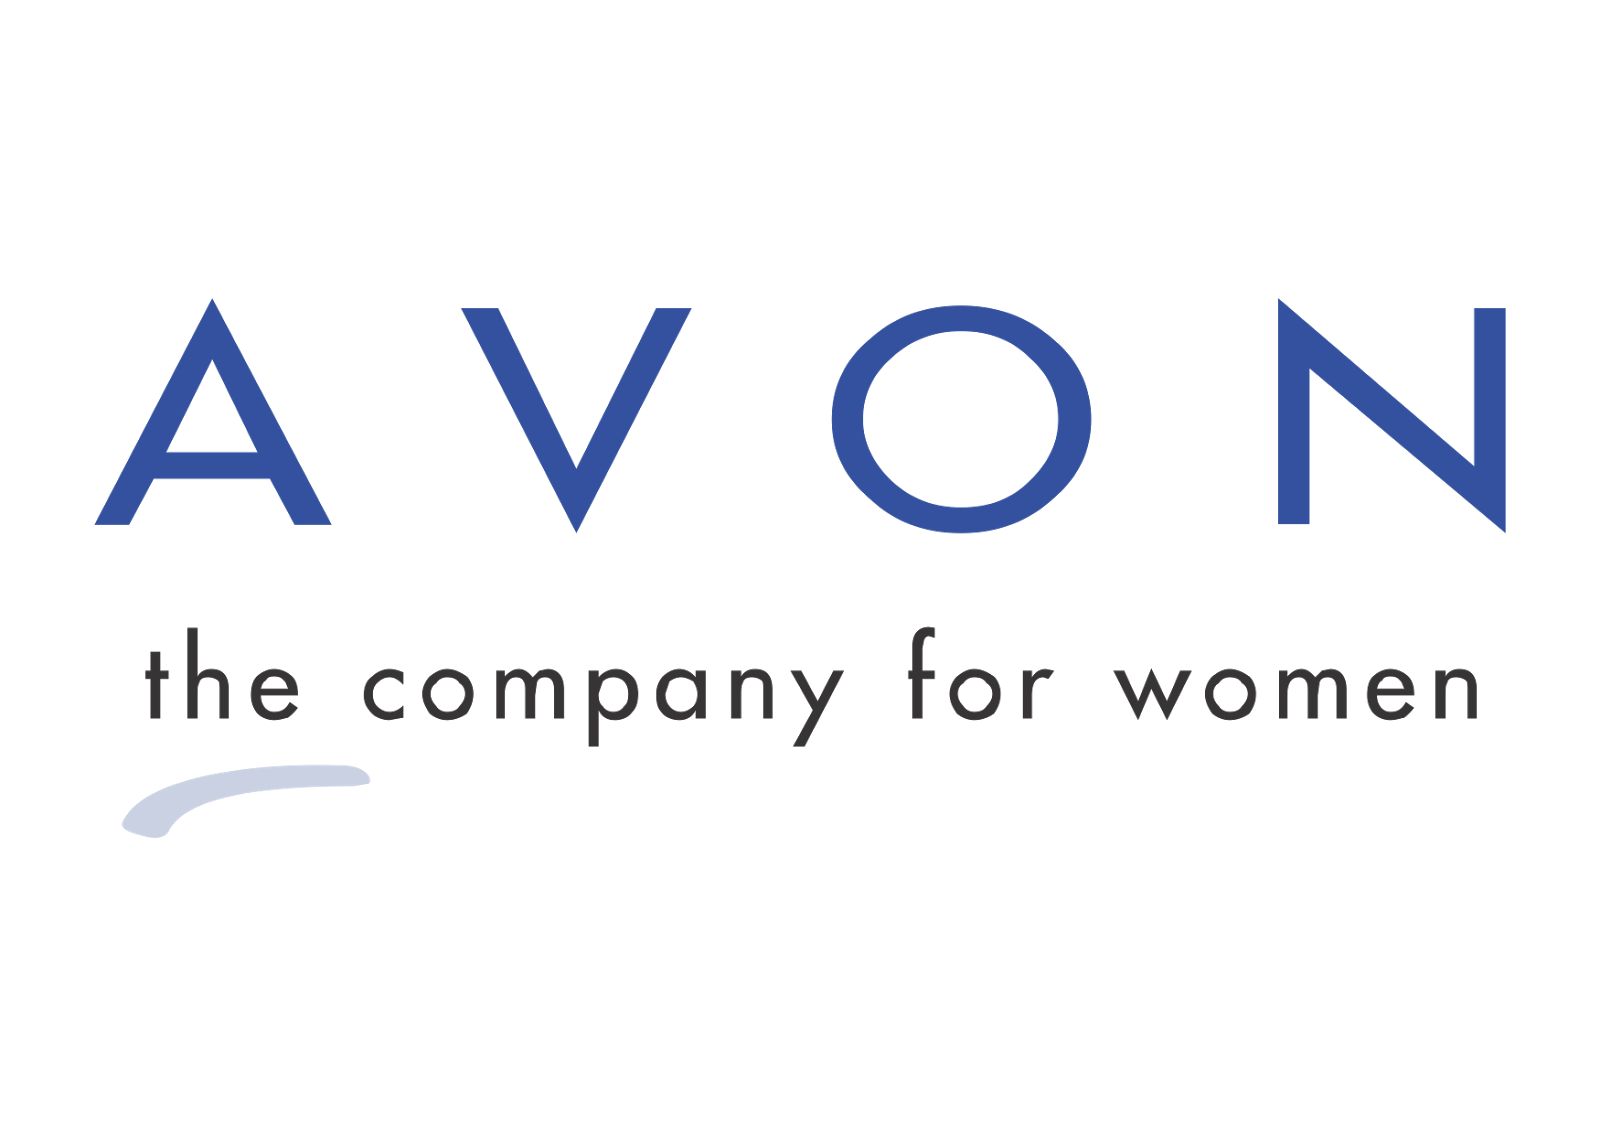 Avon Logo Wallpaper